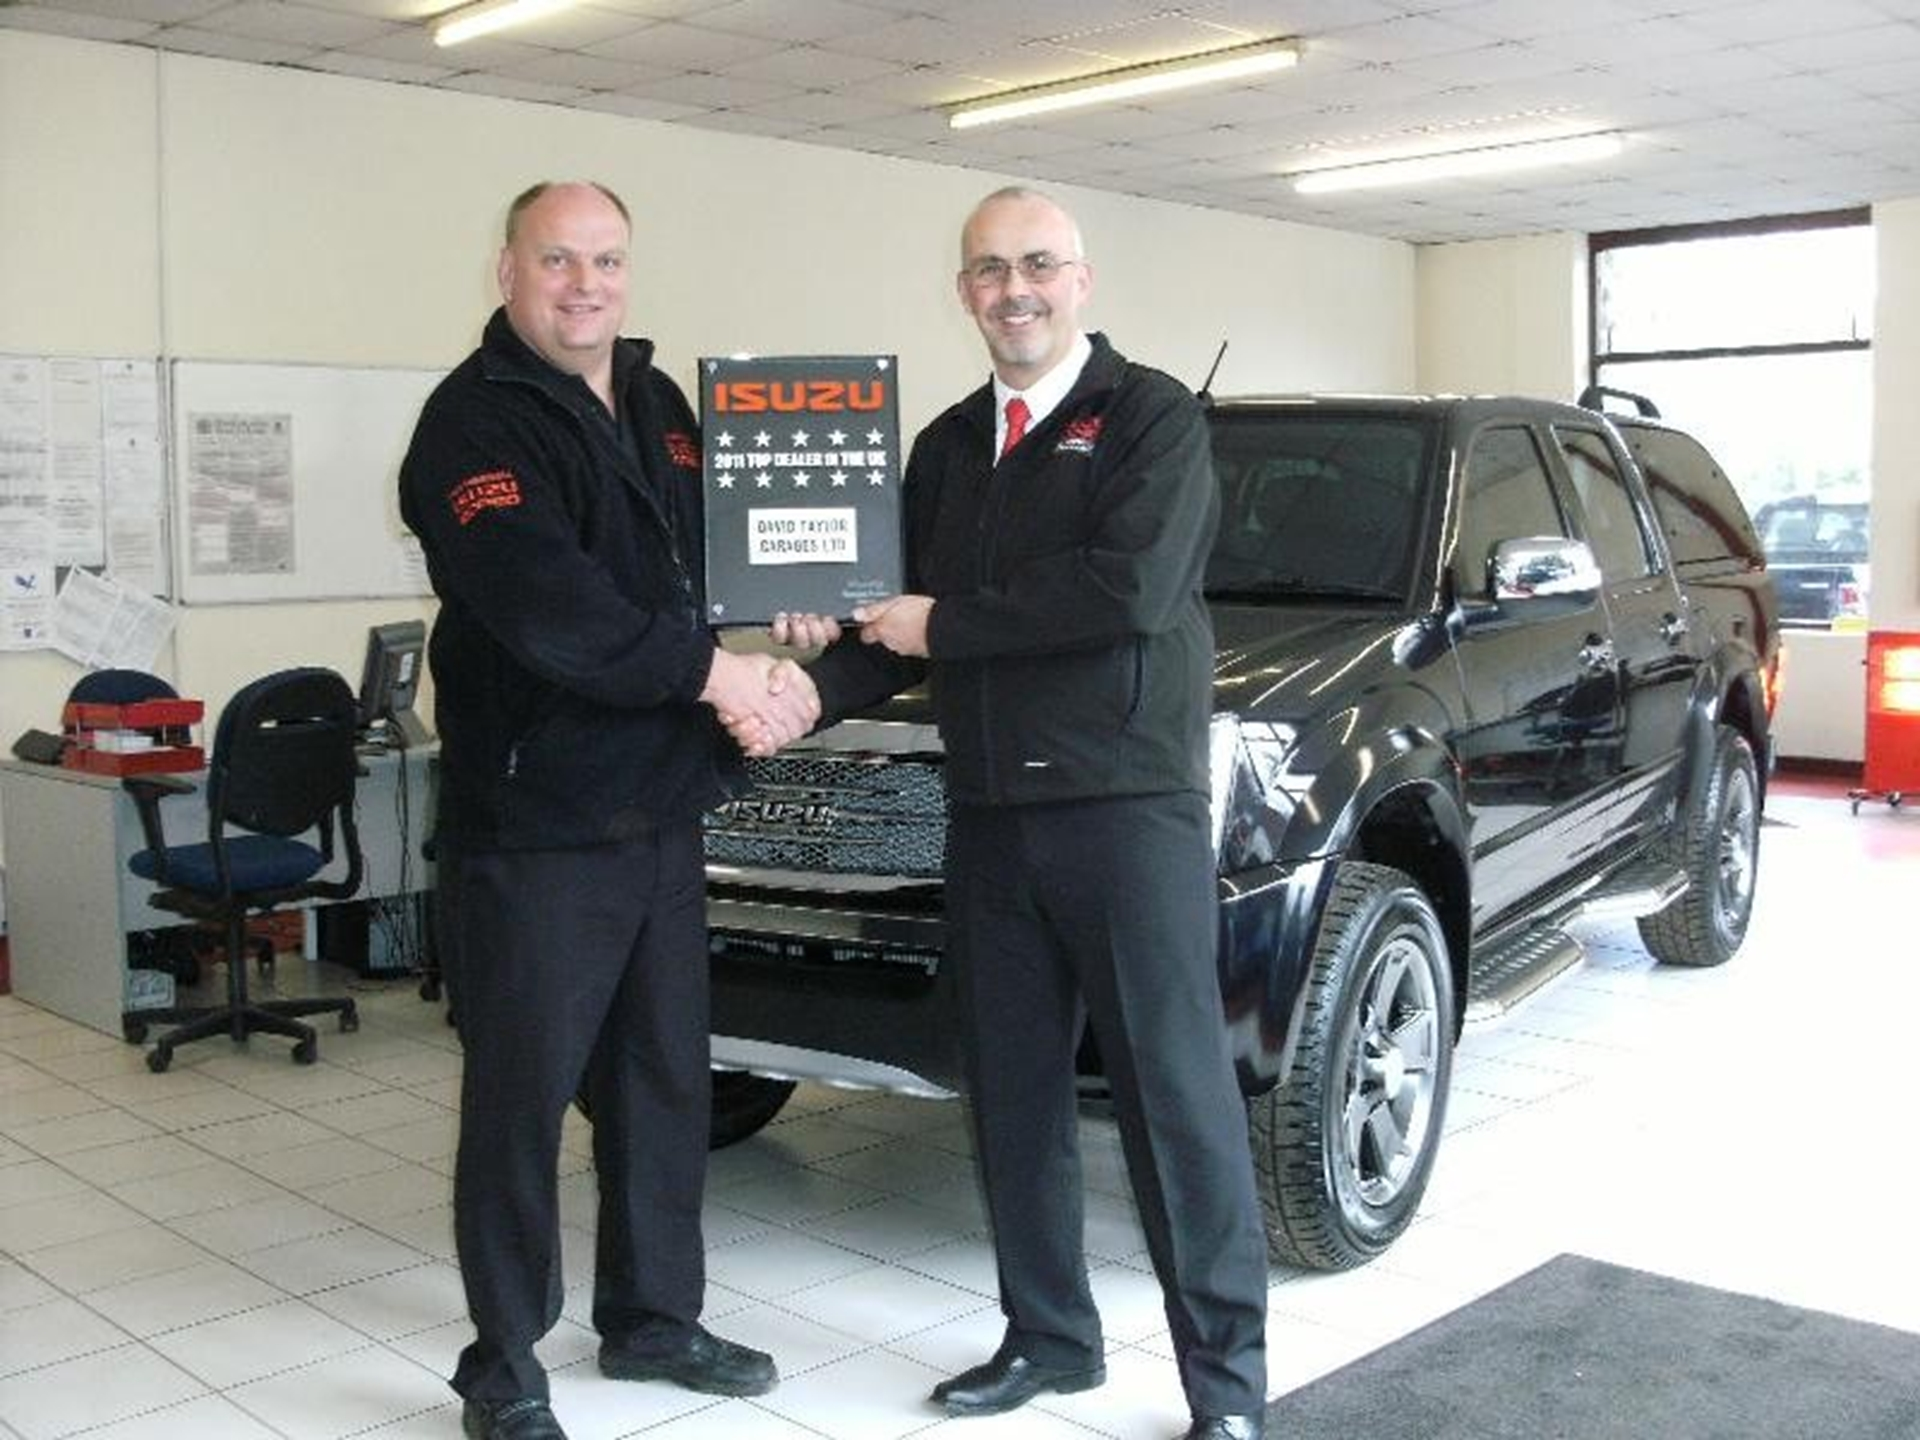 David Taylor Isuzu Dealer